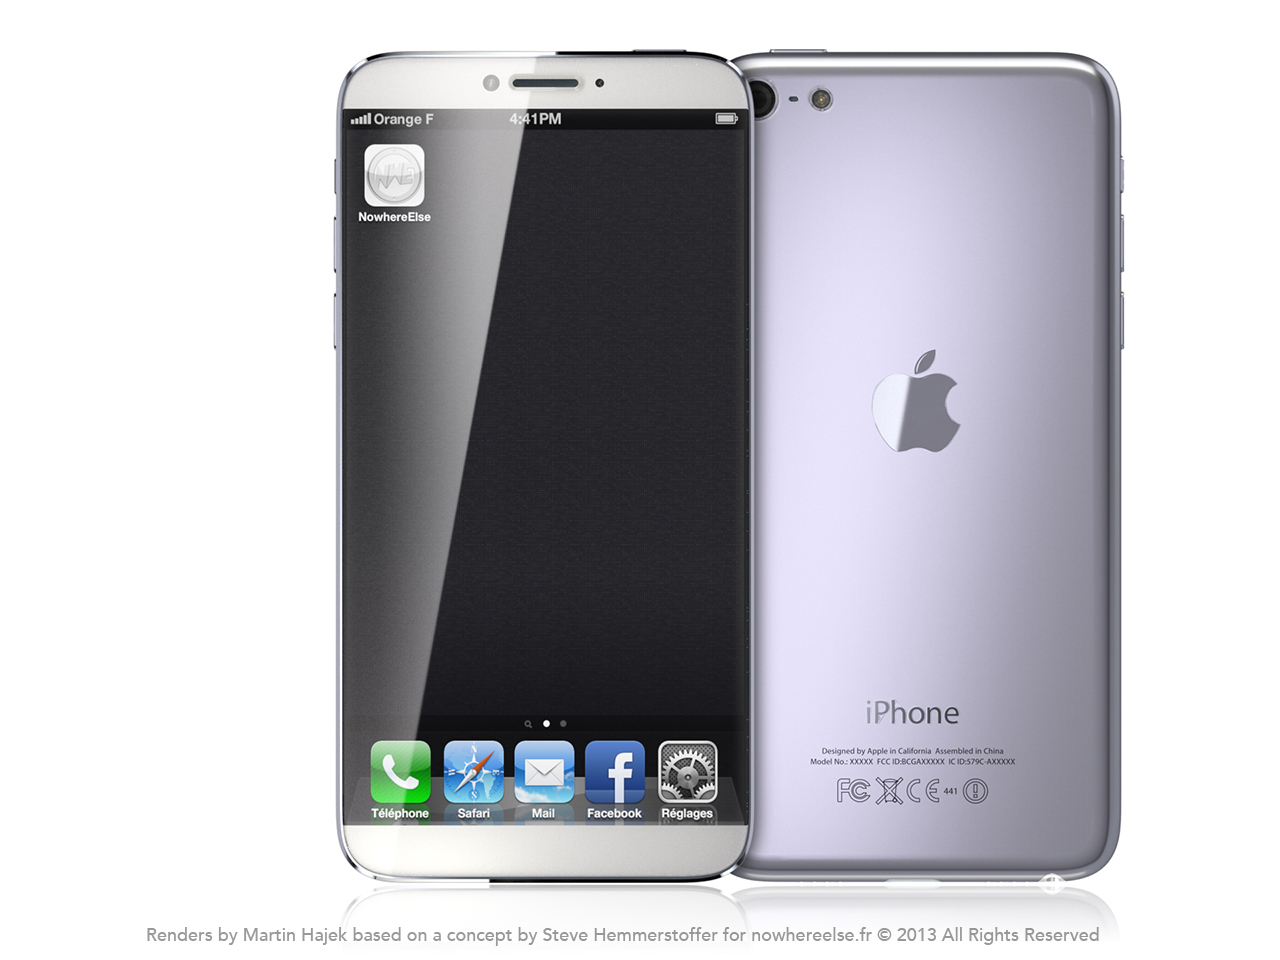 When Will the iPhone 6 be Released?